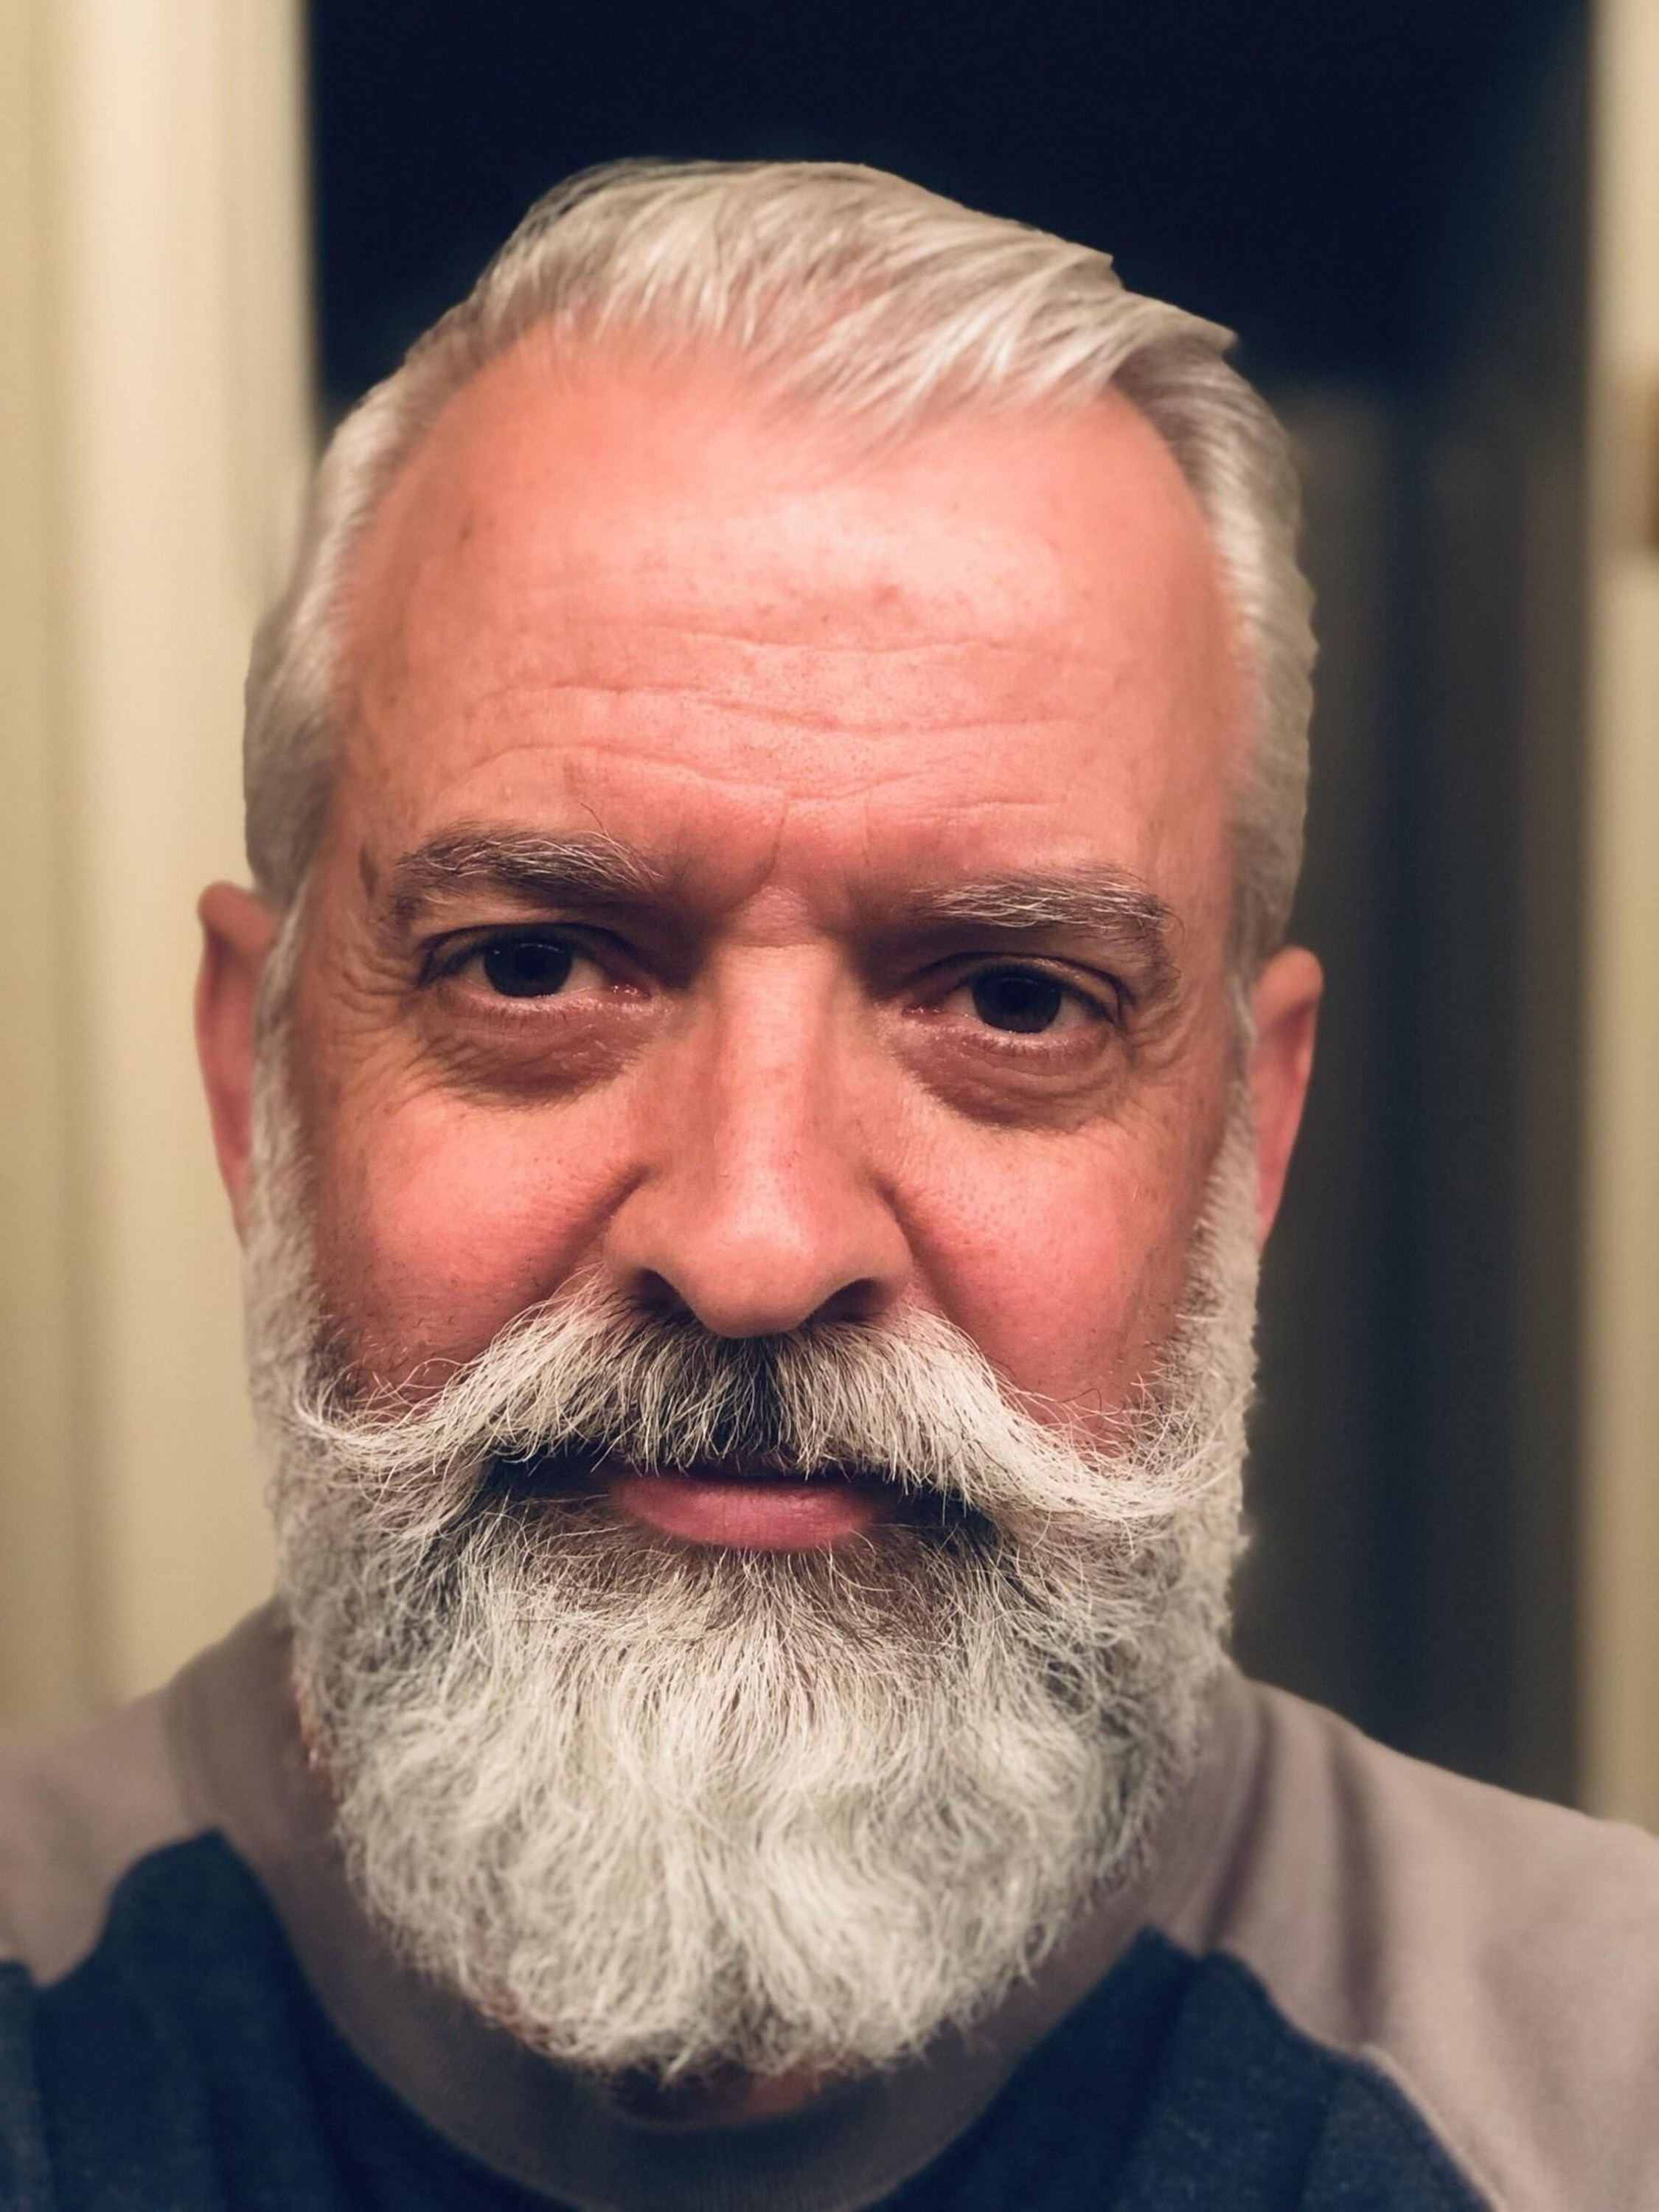 A full grey beard for men in 2020.